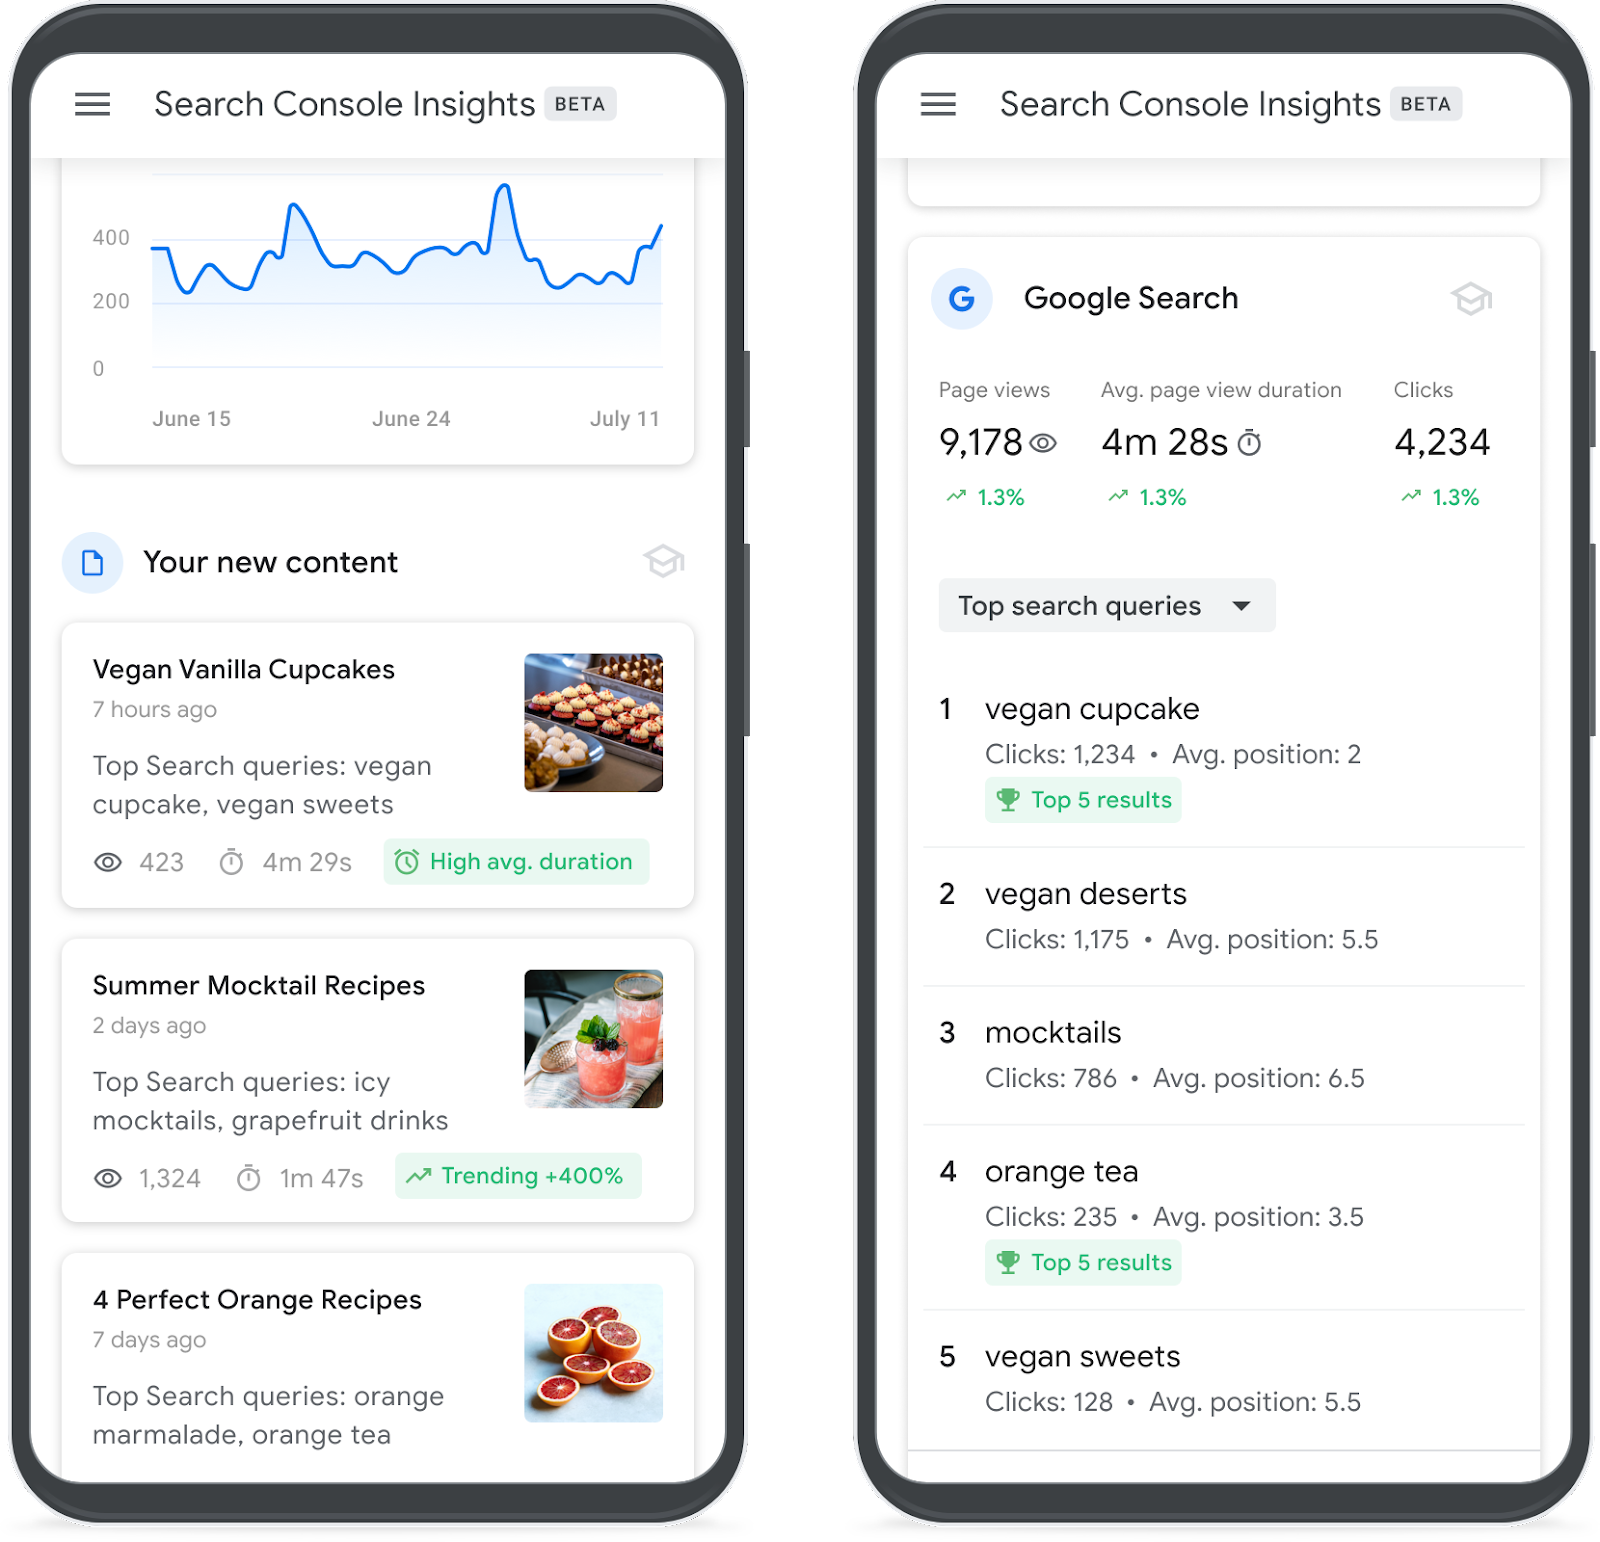 Learn How to Improve Your Content with Search Console Insights